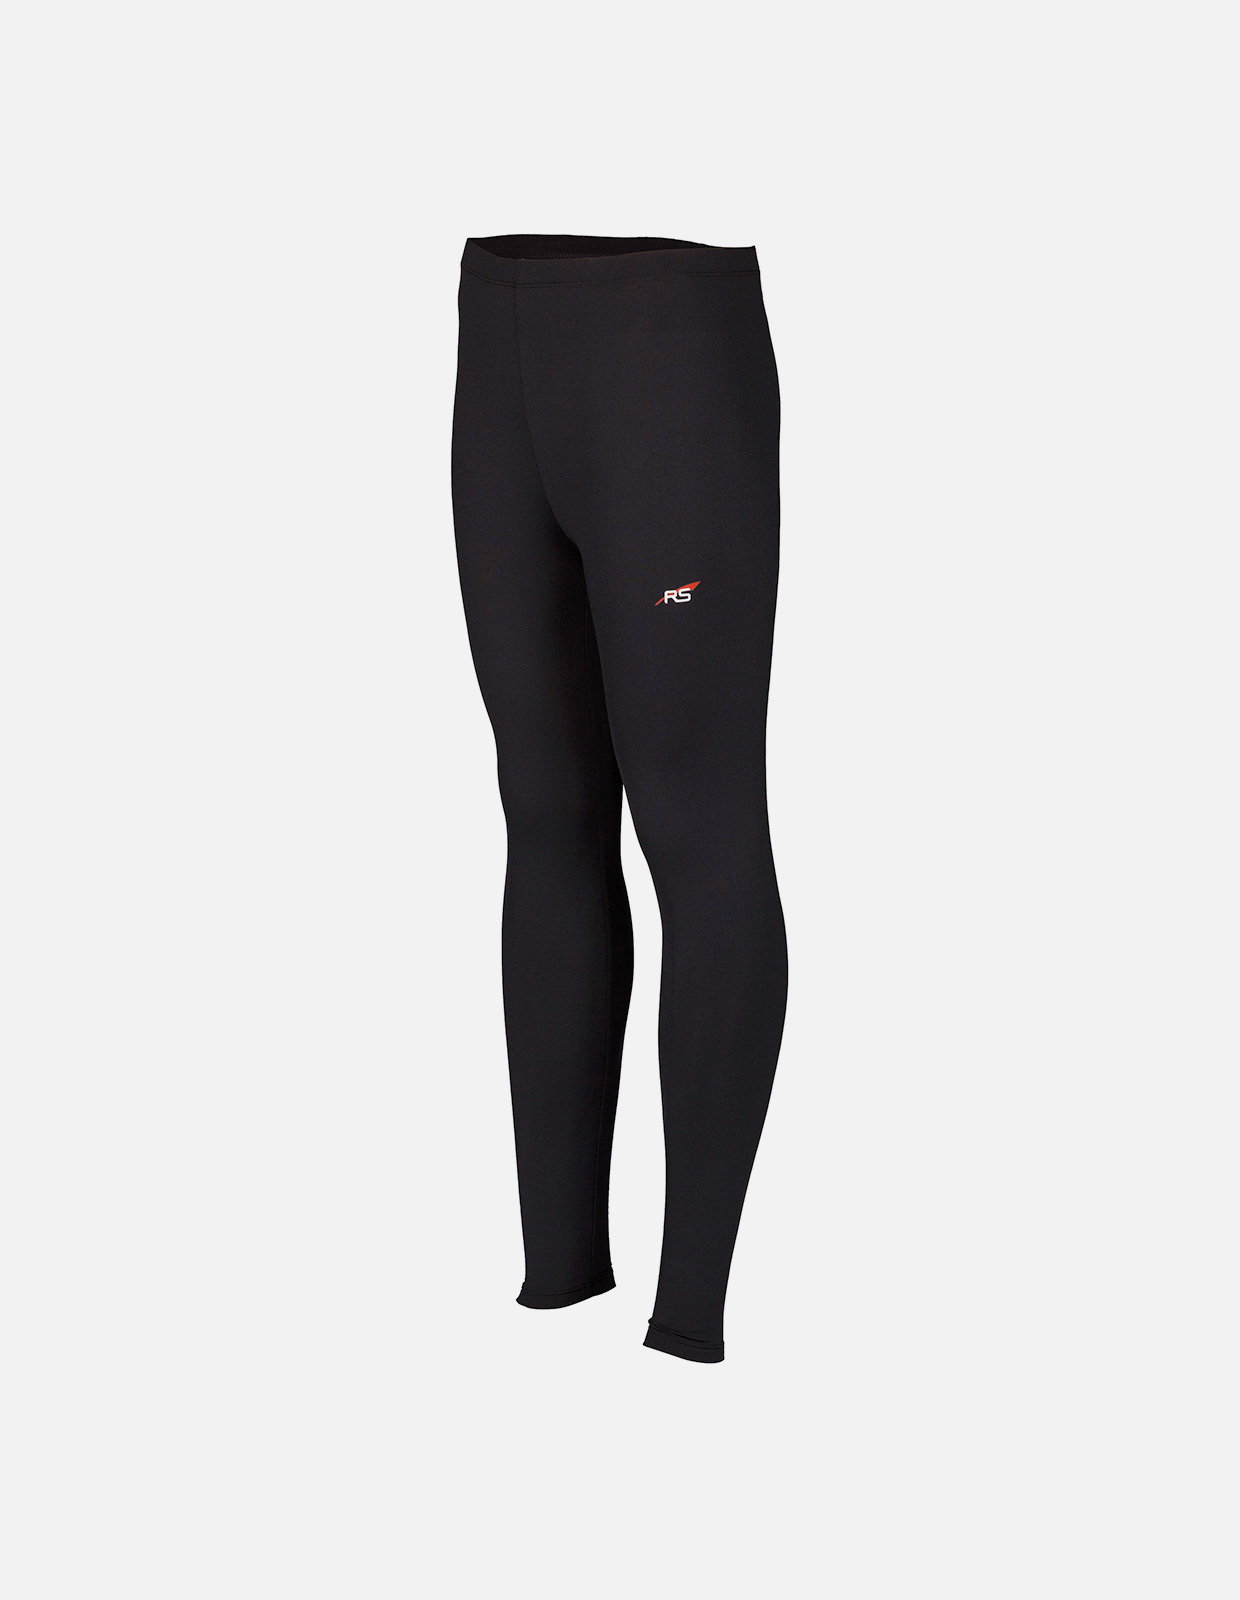 Trainer tight black m 01e